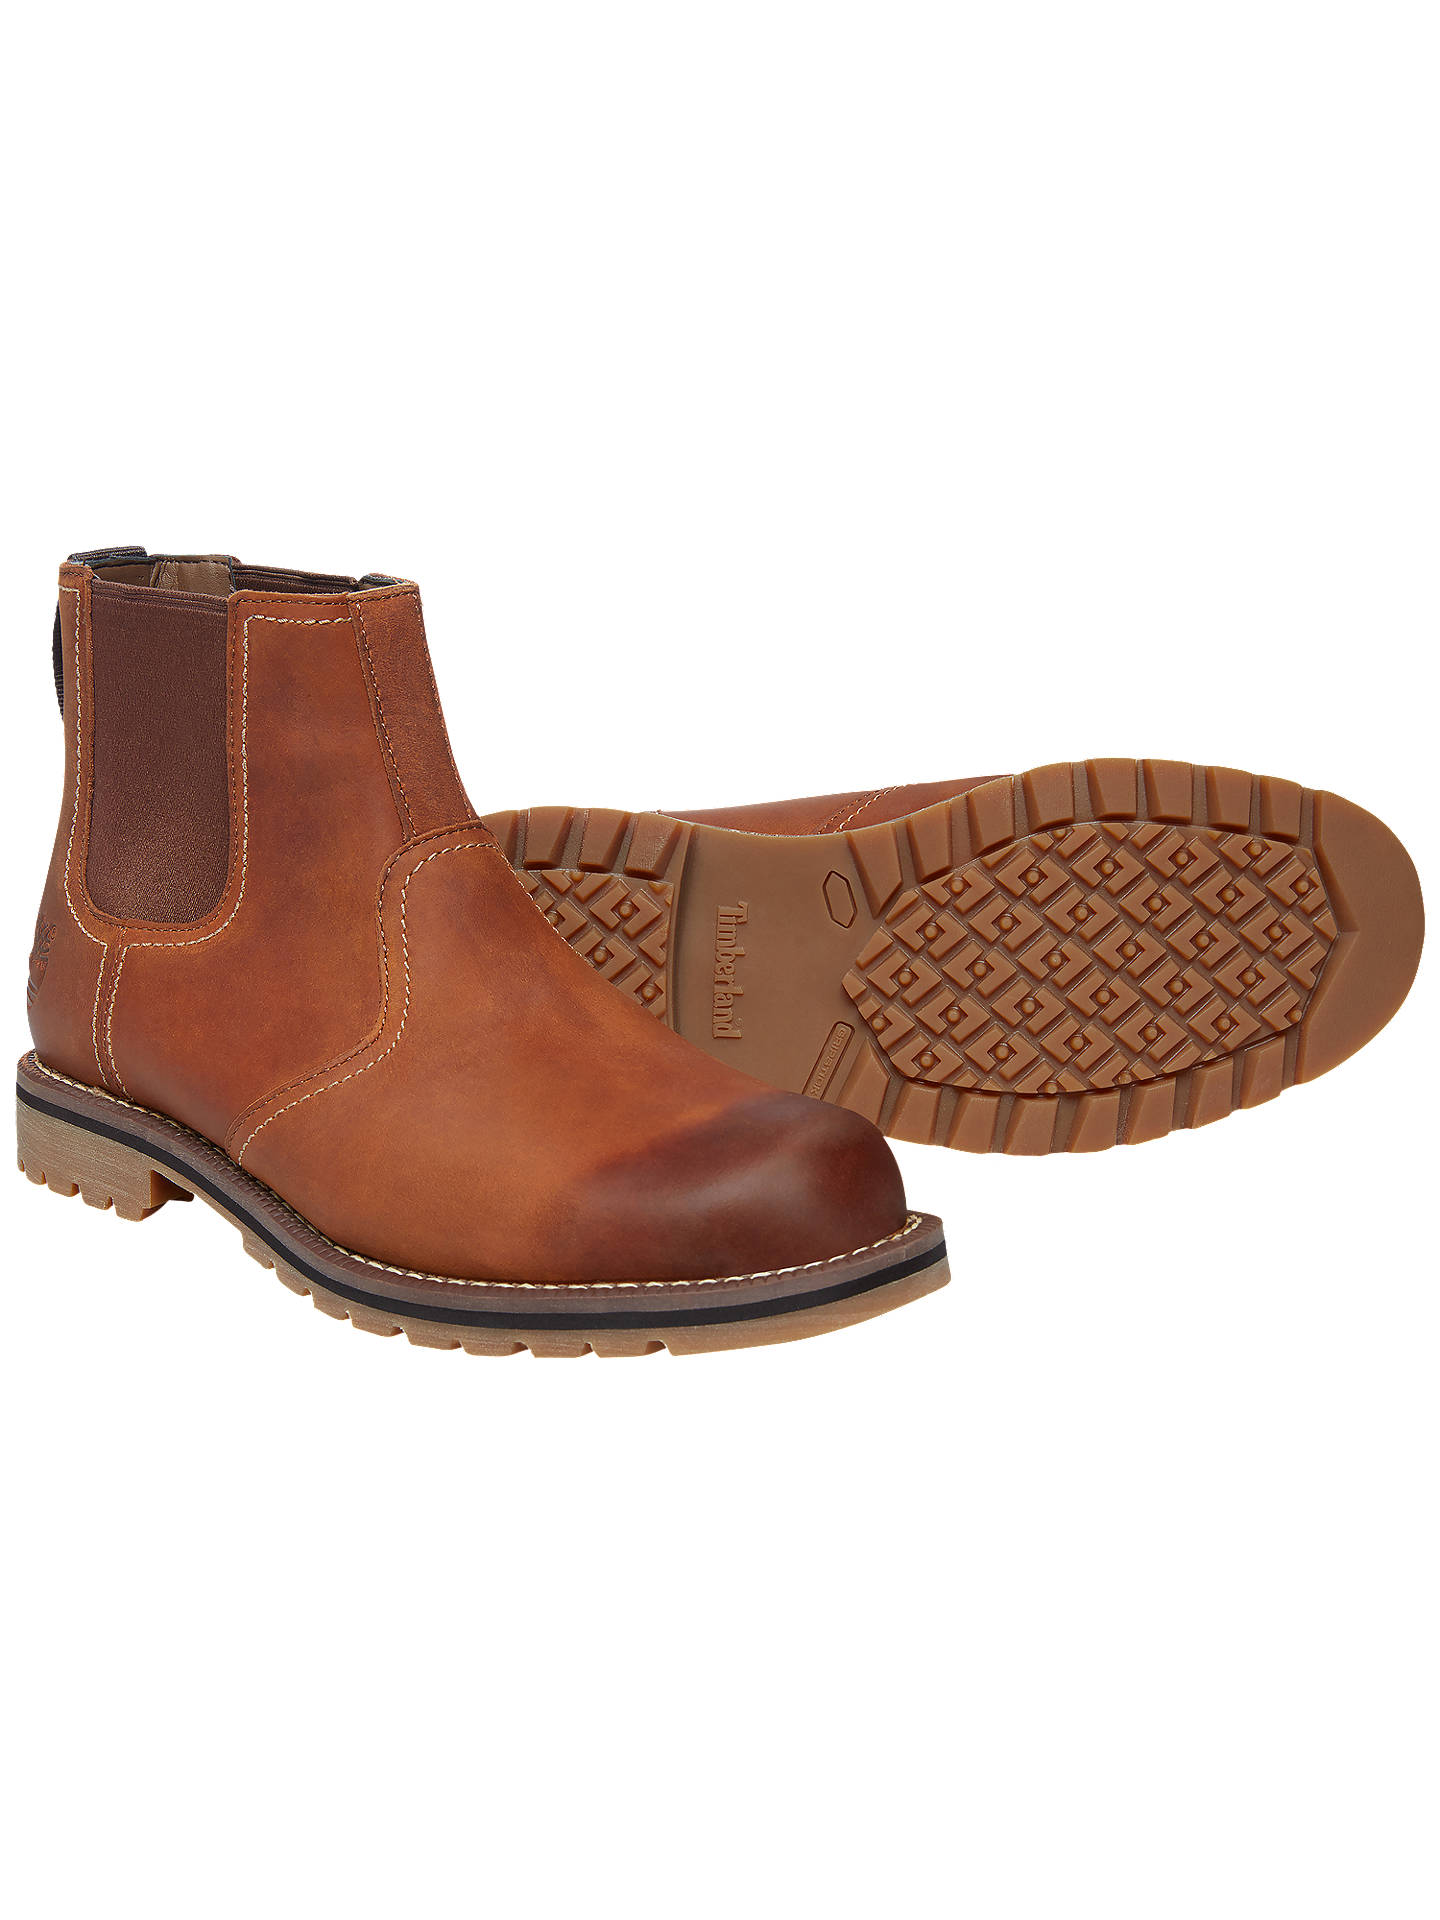 06357f7b5ee4 Timberland Larchmont Leather Chelsea Boot at John Lewis   Partners